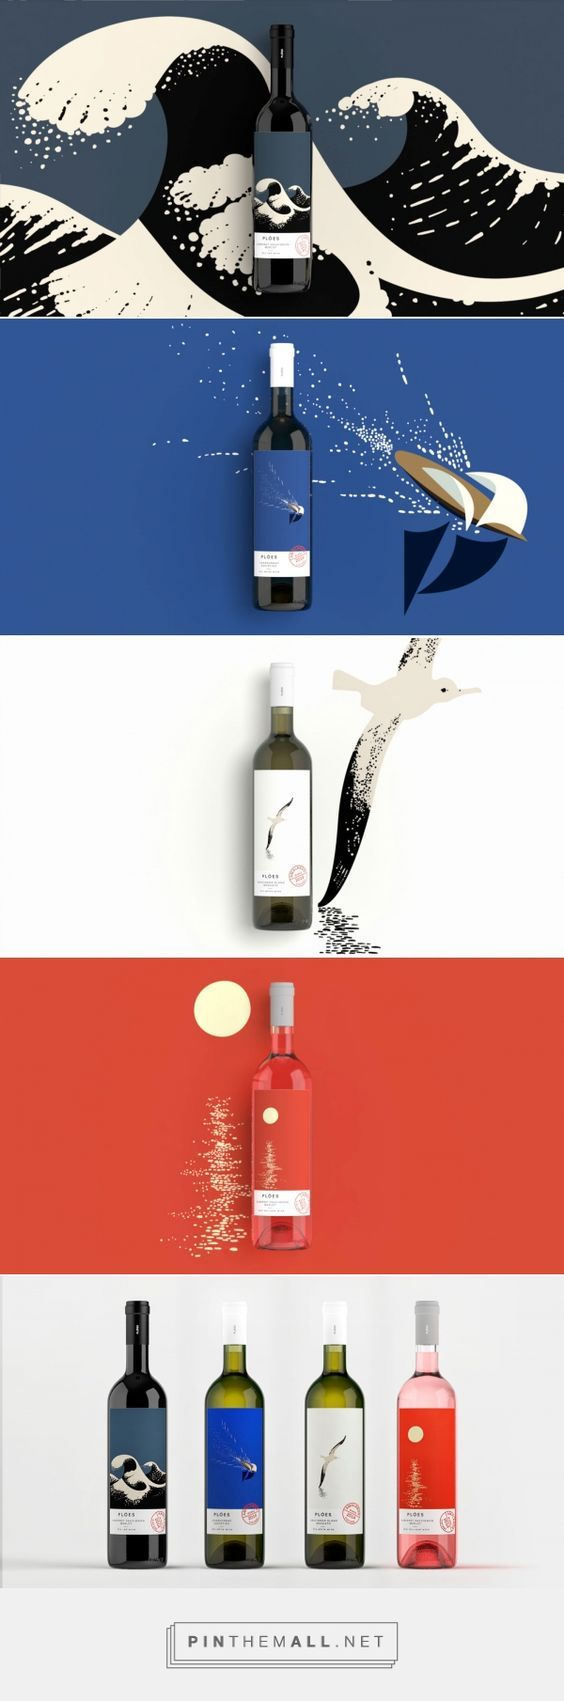 Ploes Wine Packaging by Beetroot Design Group   Fivestar Branding Agency – Design and Branding Agency & Curated Inspiration Gallery